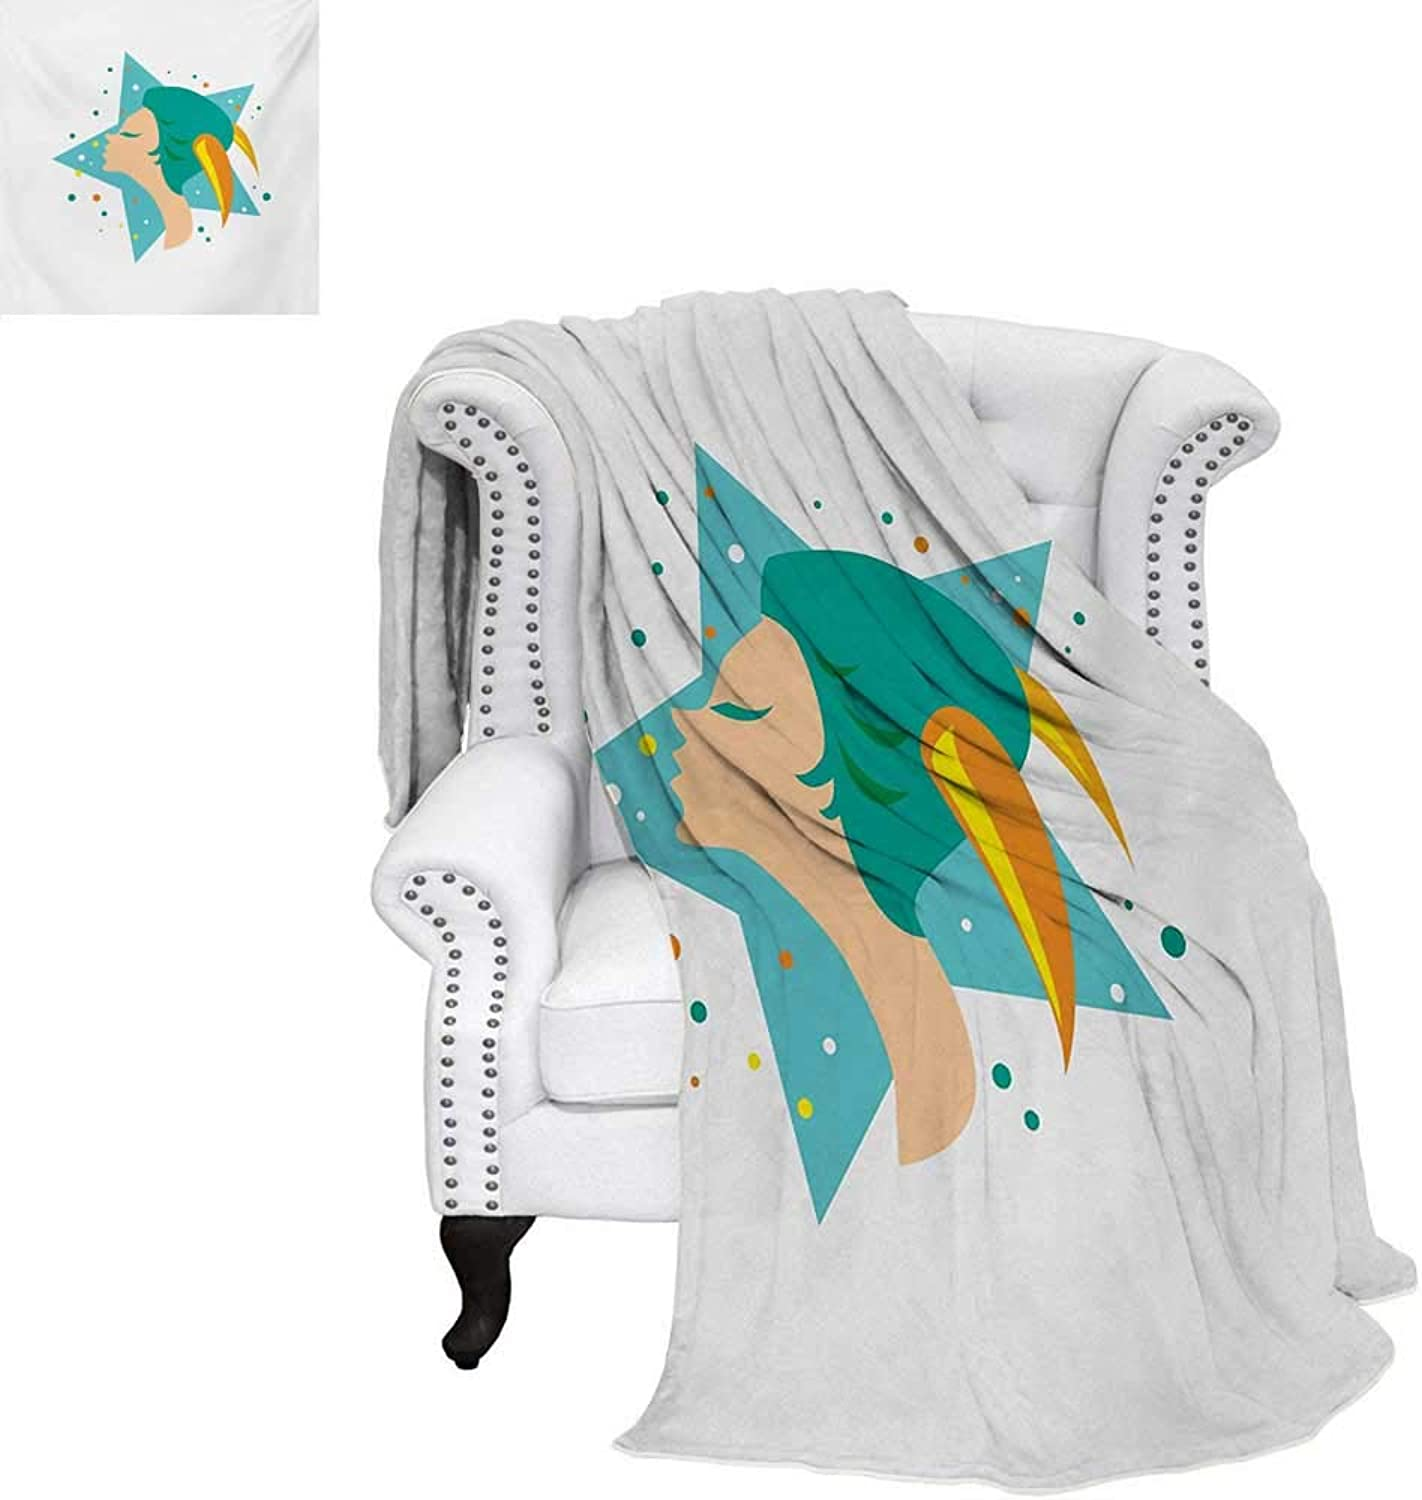 Warmfamily Zodiac Capricorn Oversized Travel Throw Cover Blanket Cartoon Woman Horns on a Giant Stars colorful Dots Background Super Soft Lightweight Blanket 62 x60  Multicolor